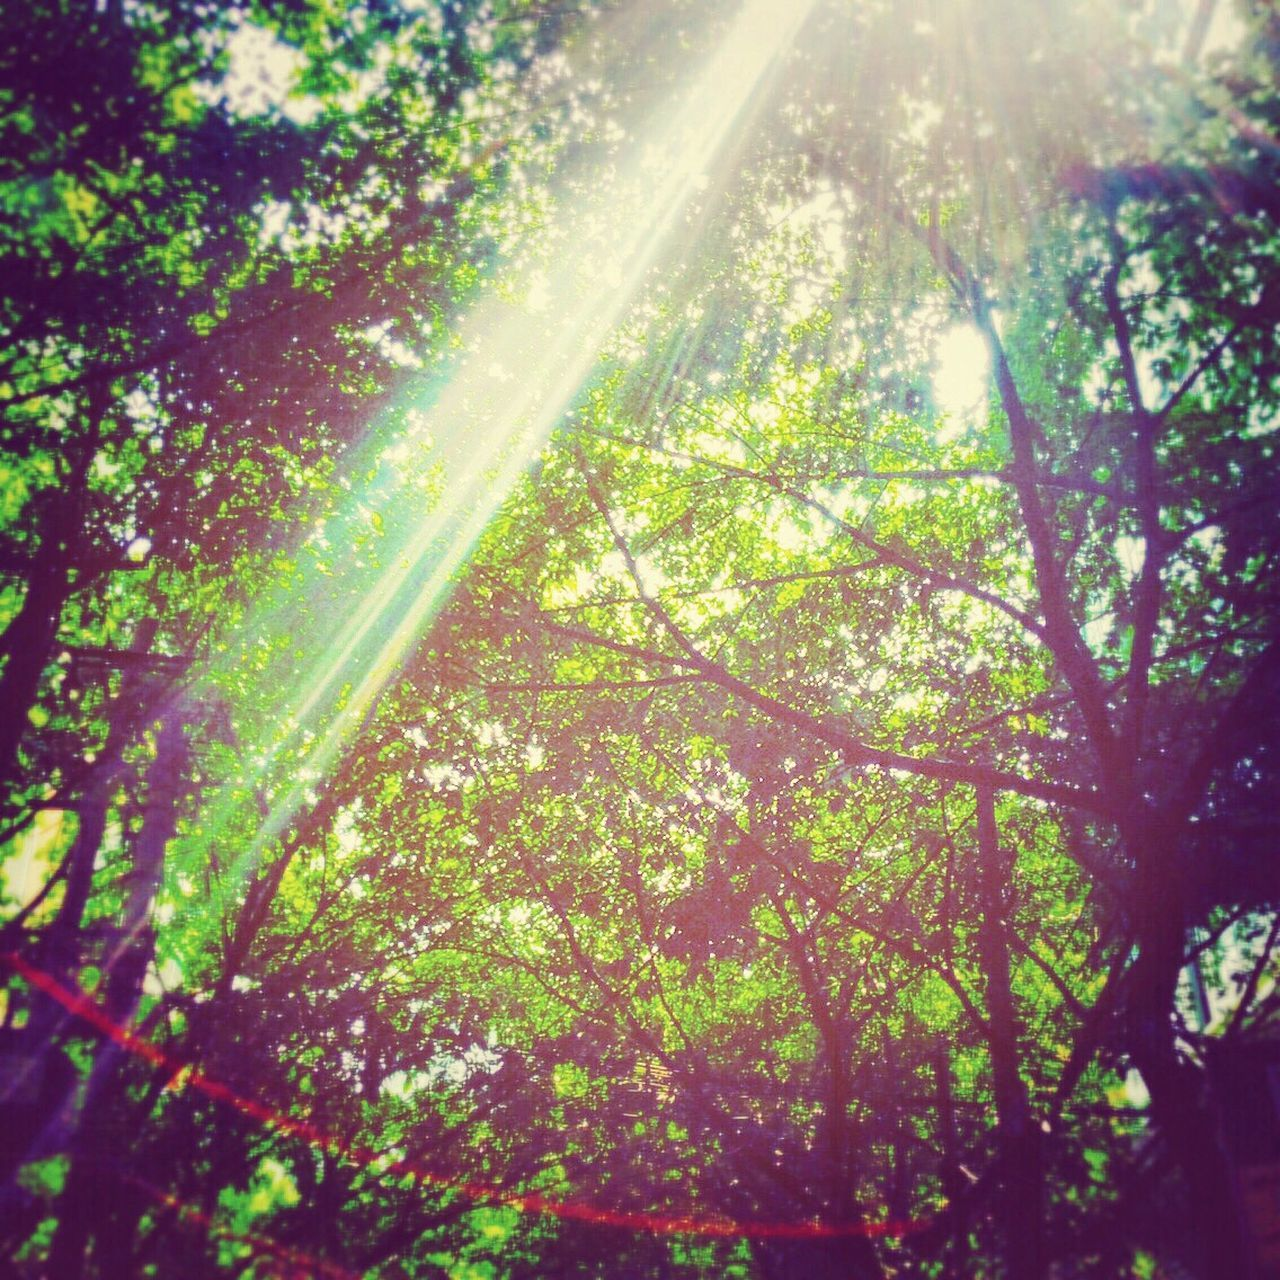 sunbeam, tree, nature, growth, sunlight, lens flare, sun, bright, beauty in nature, day, low angle view, no people, outdoors, leaf, brightly lit, scenics, forest, branch, freshness